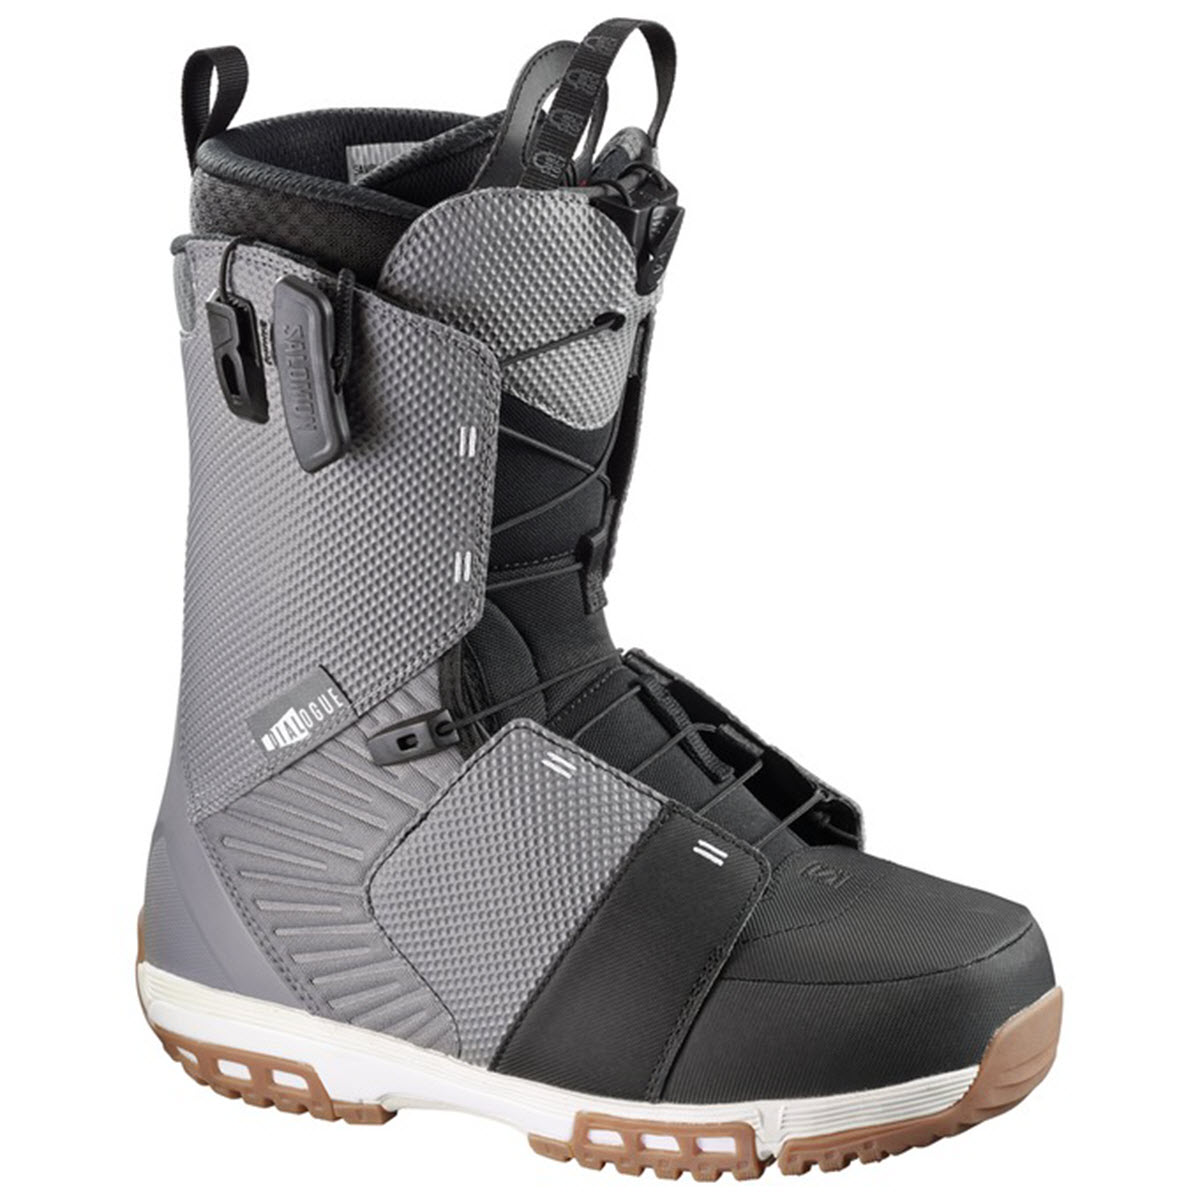 Climbing & Hiking Boots|Snowboard Boots Salomon Dialogue Speed Lace Snowboard Boots 2017 Detroit Black White UK 12